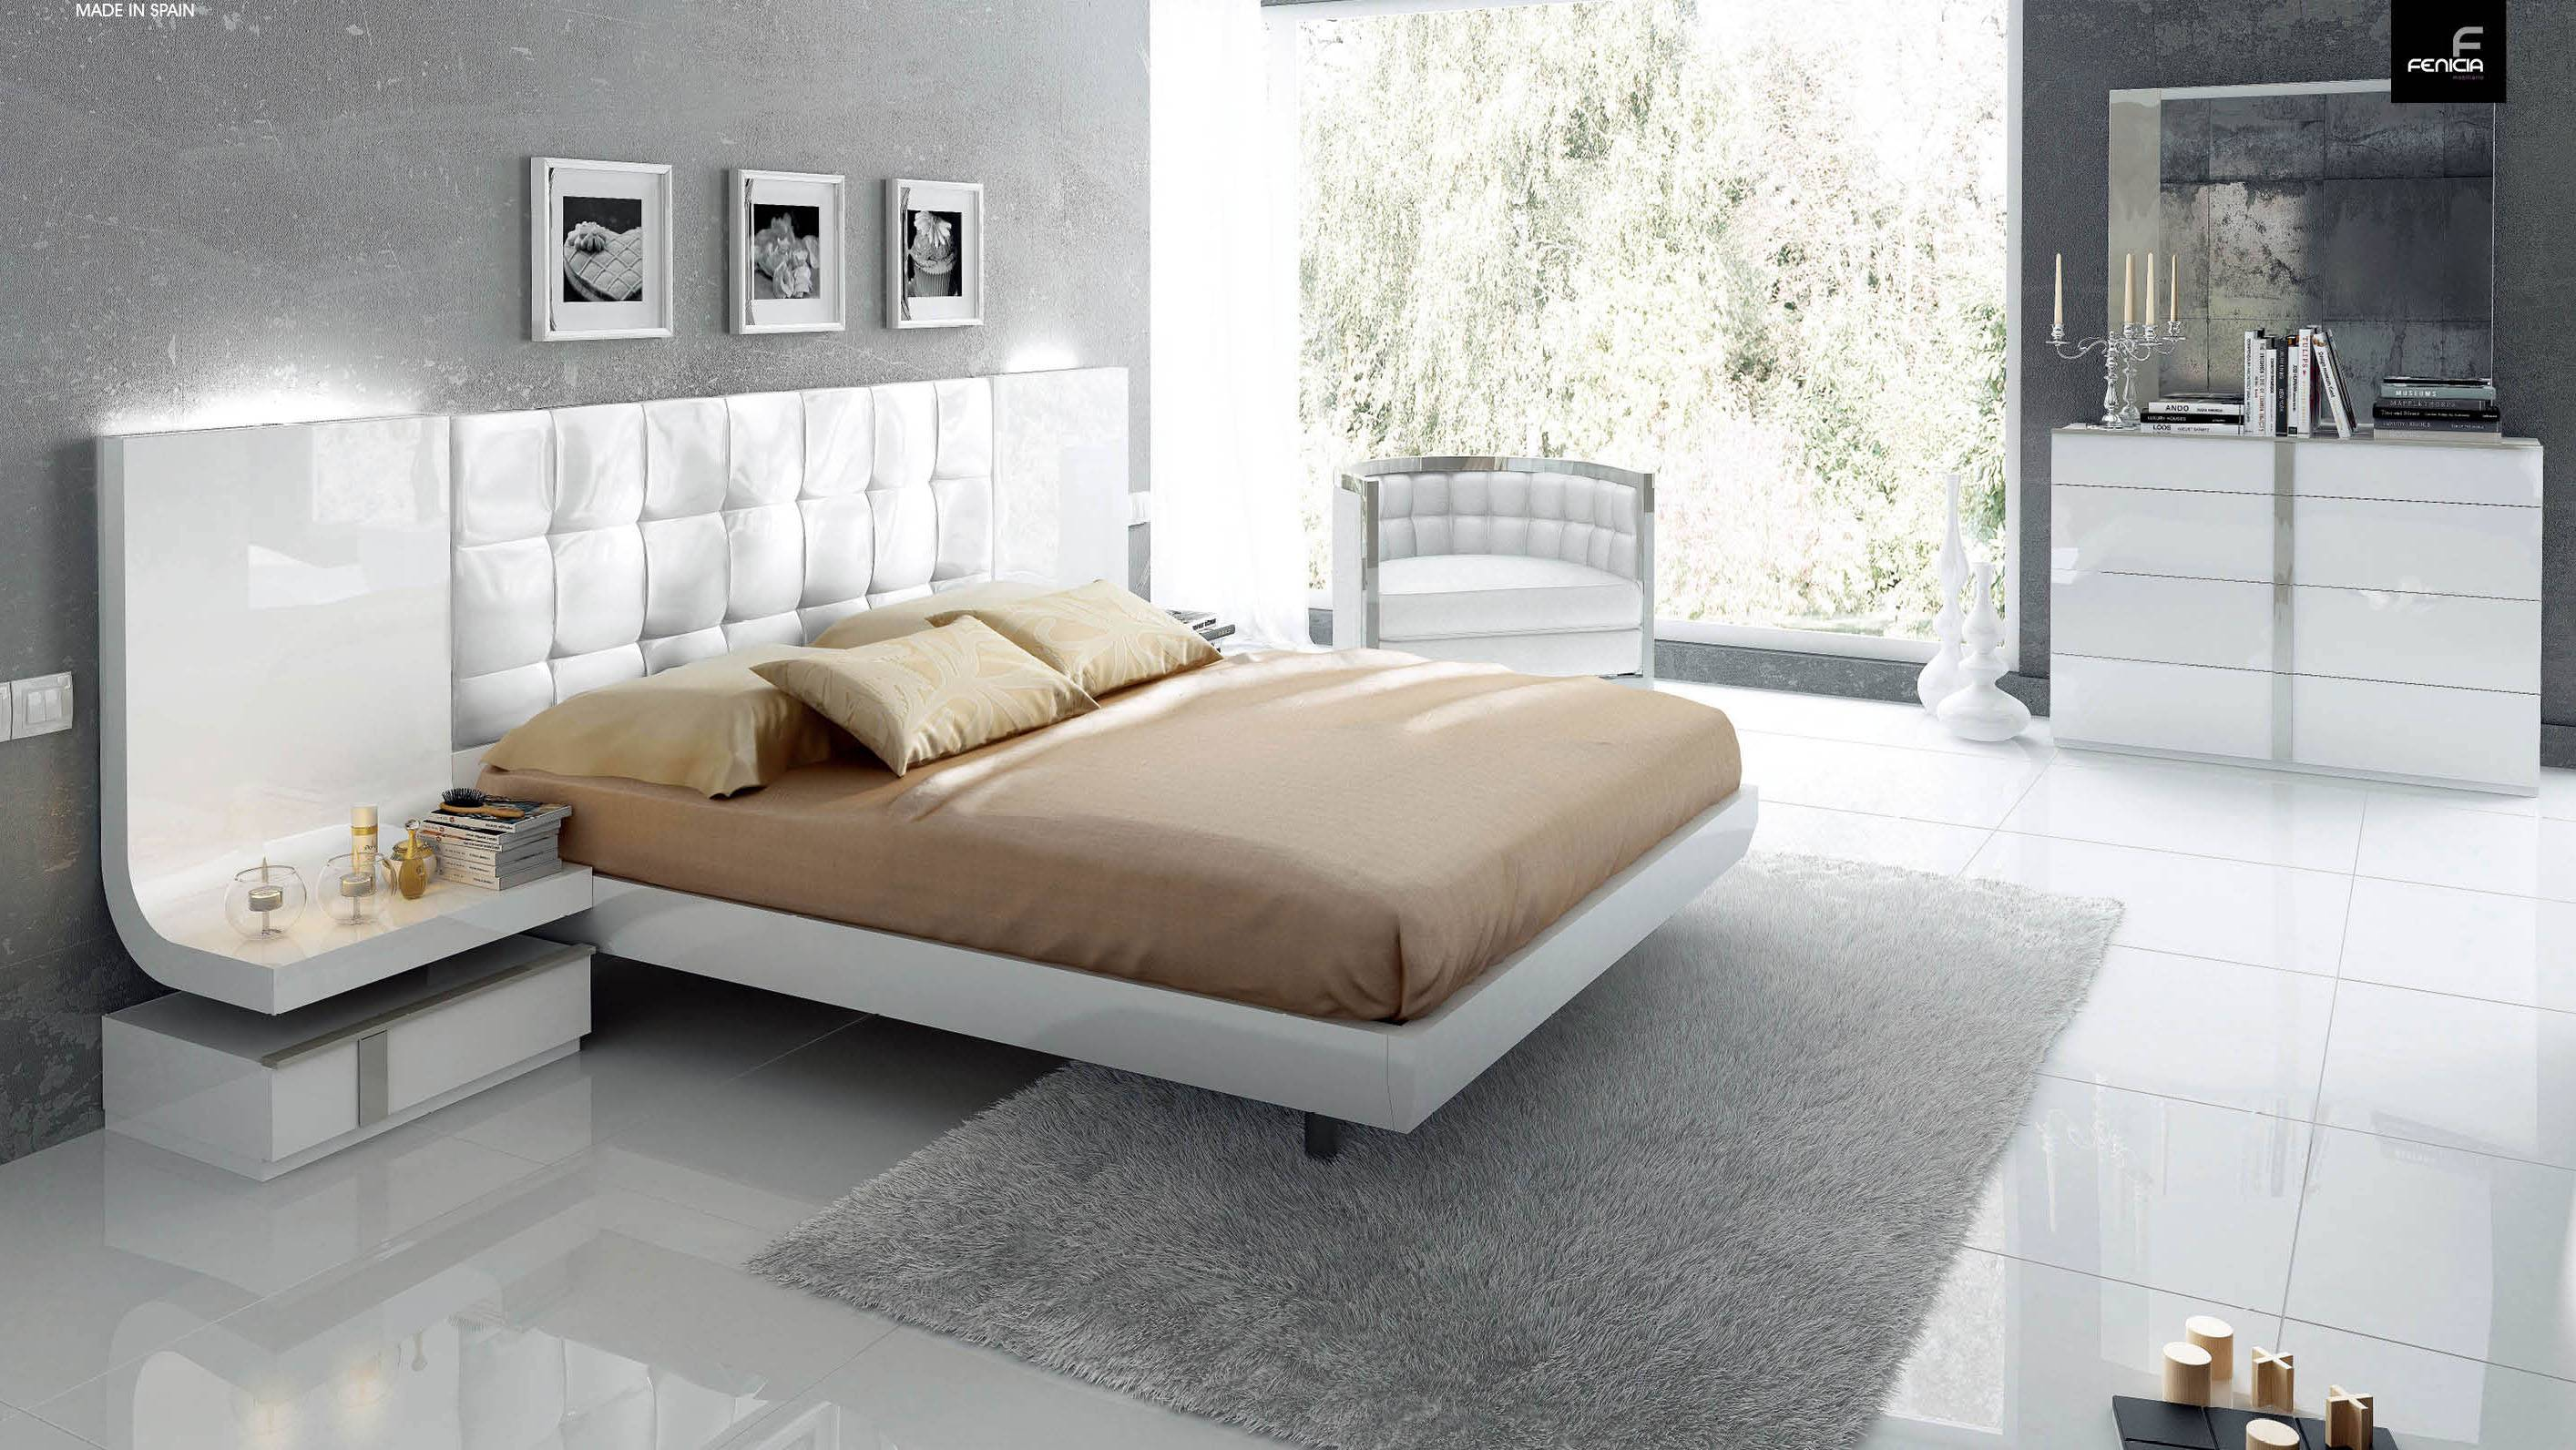 stylish wood elite modern bedroom set with extra storage 16439 | white luxury padded headboard lacquered bedroom esfgranada